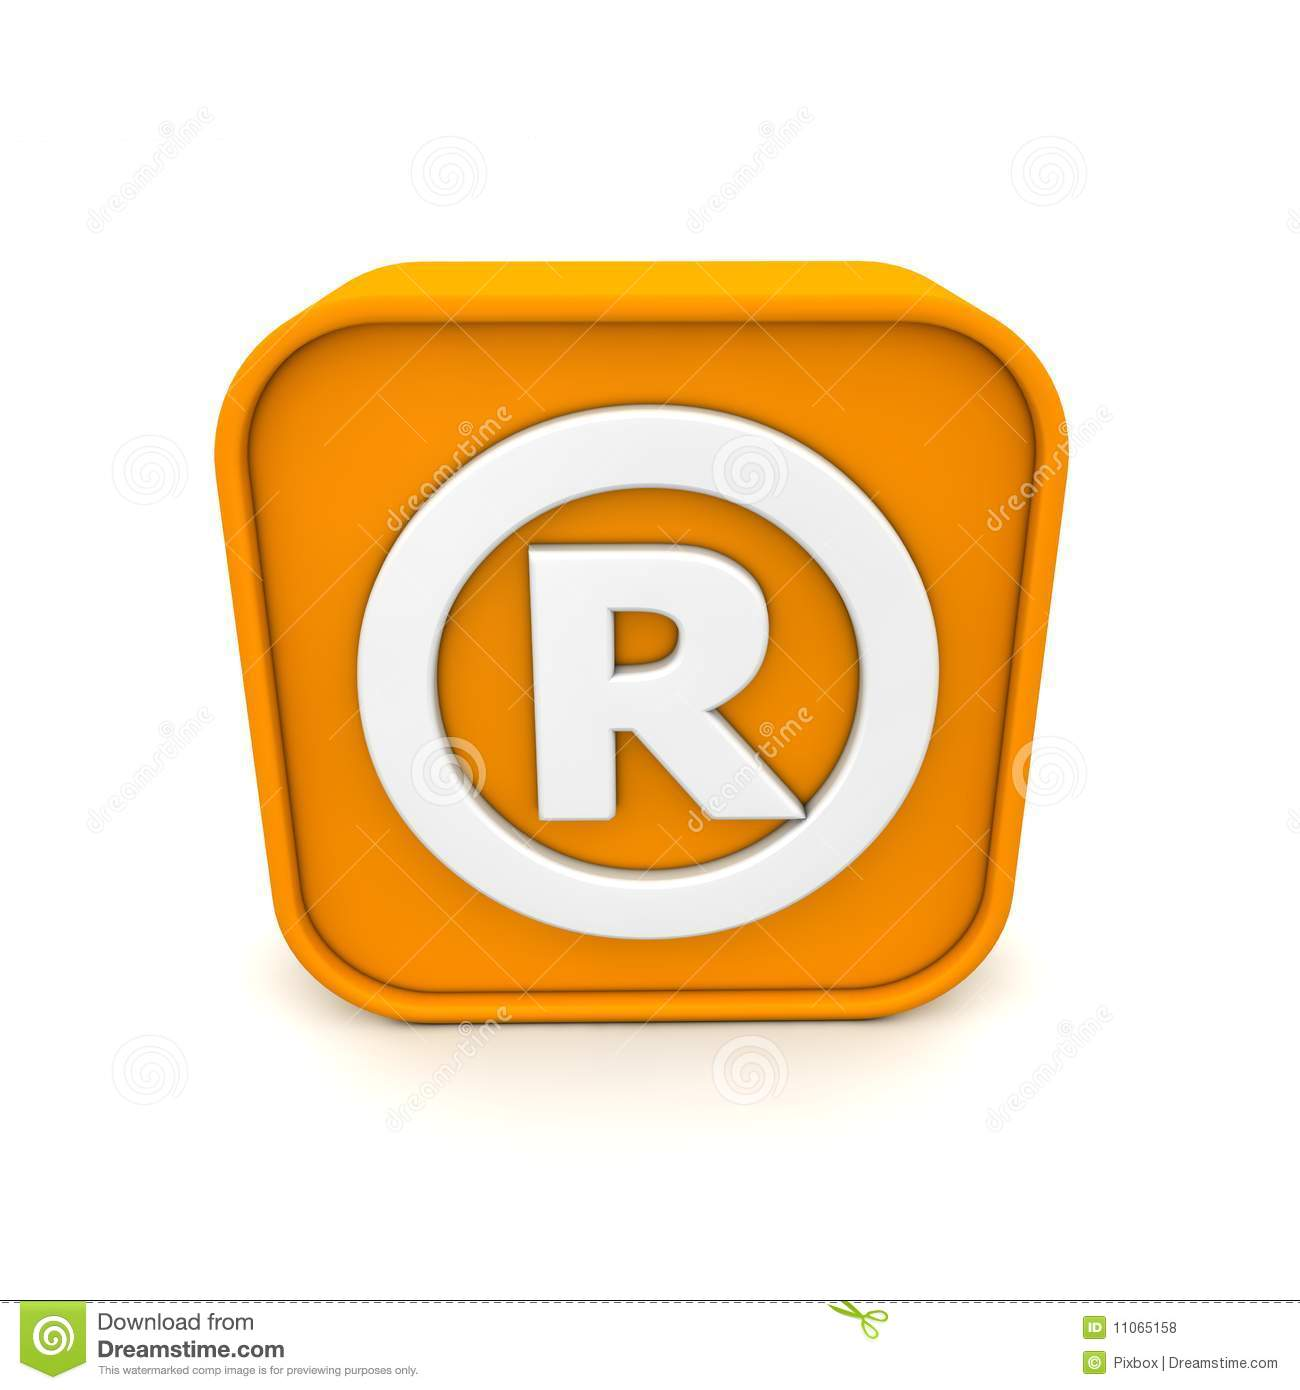 Registered trademark like rss stock illustration illustration of registered trademark like rss biocorpaavc Choice Image